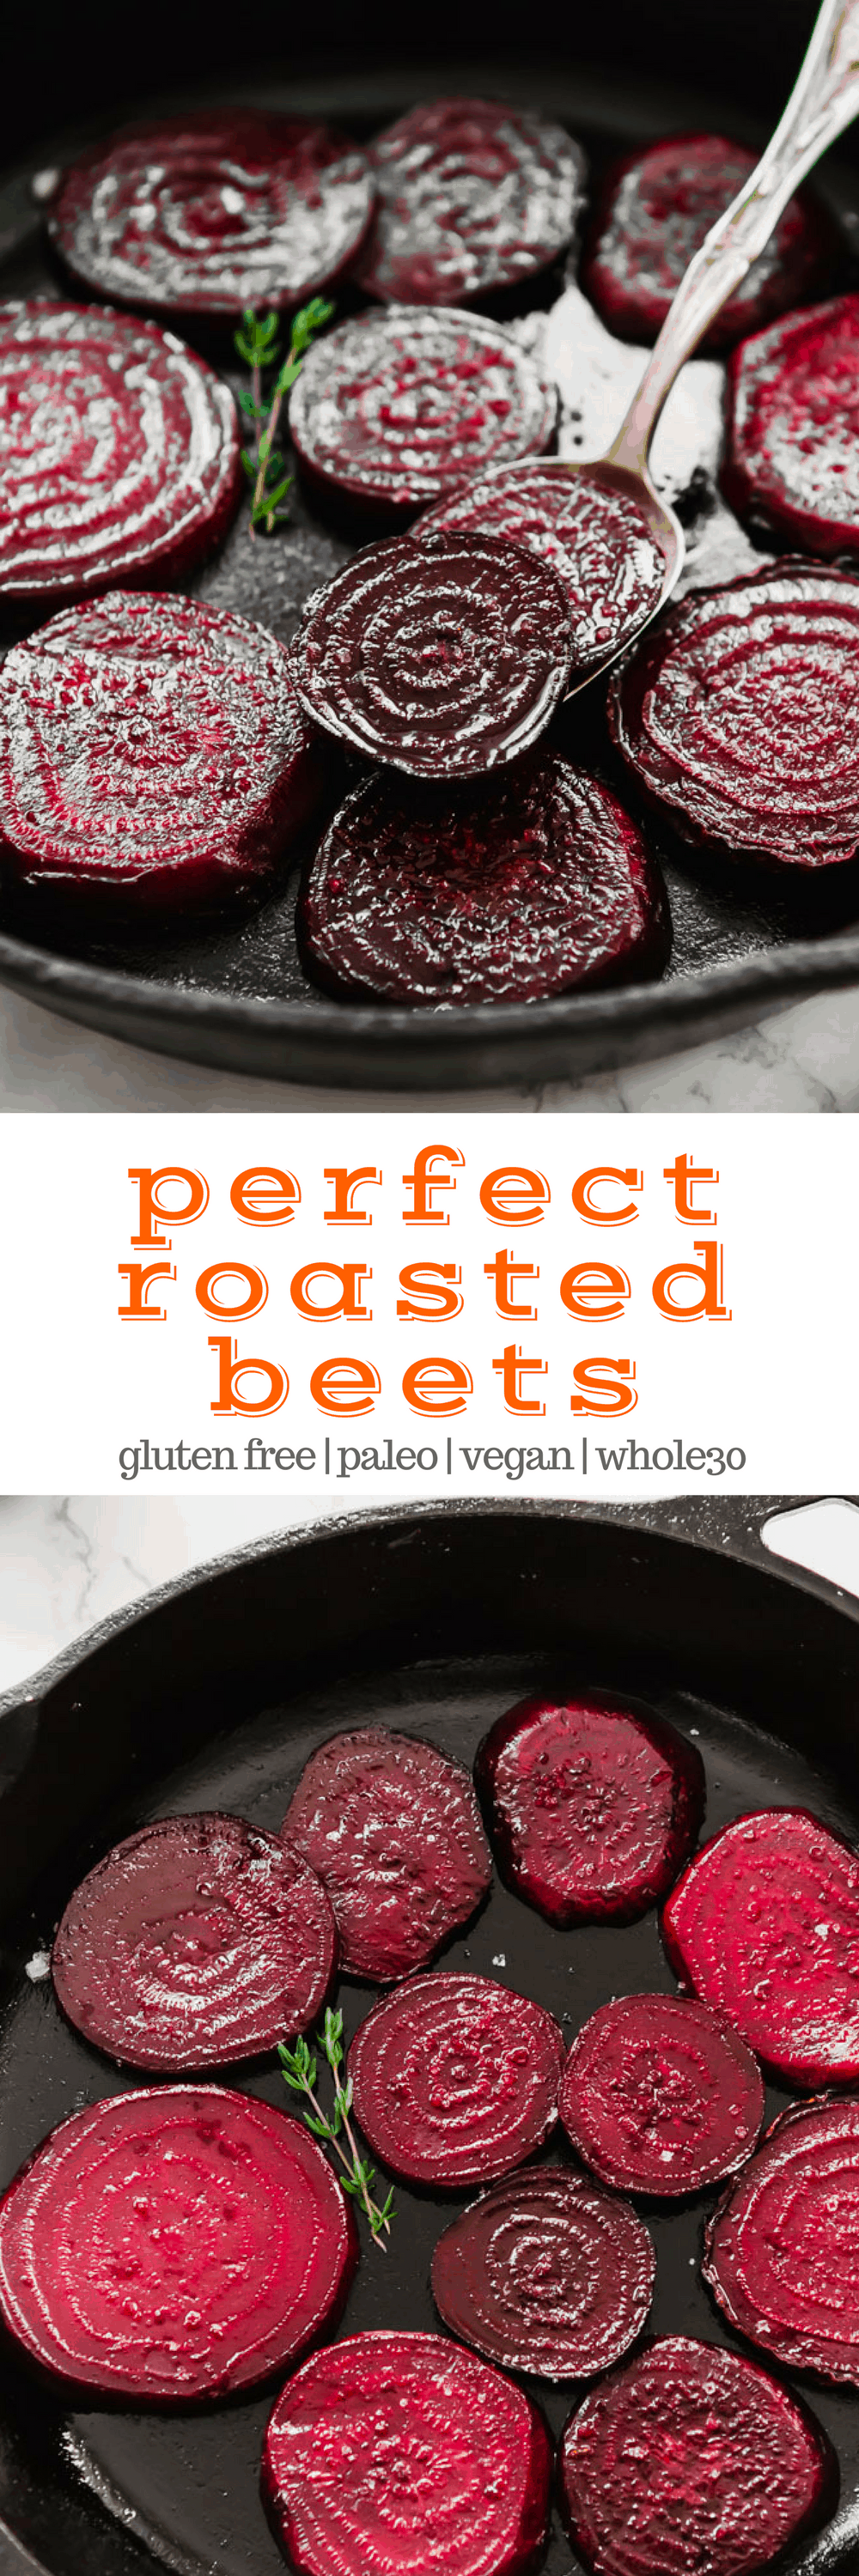 Properly roasted beets are a far cry from those soggy tasteless pink slabs that come in a can. Roasted beets are sweet, rich, tender, and an incredible addition to salads - or great on their own! #glutenfree #vegan #whole30 #lowcarb #recipe #vegetables #realfood #paleo #keto #fresh #antioxidants